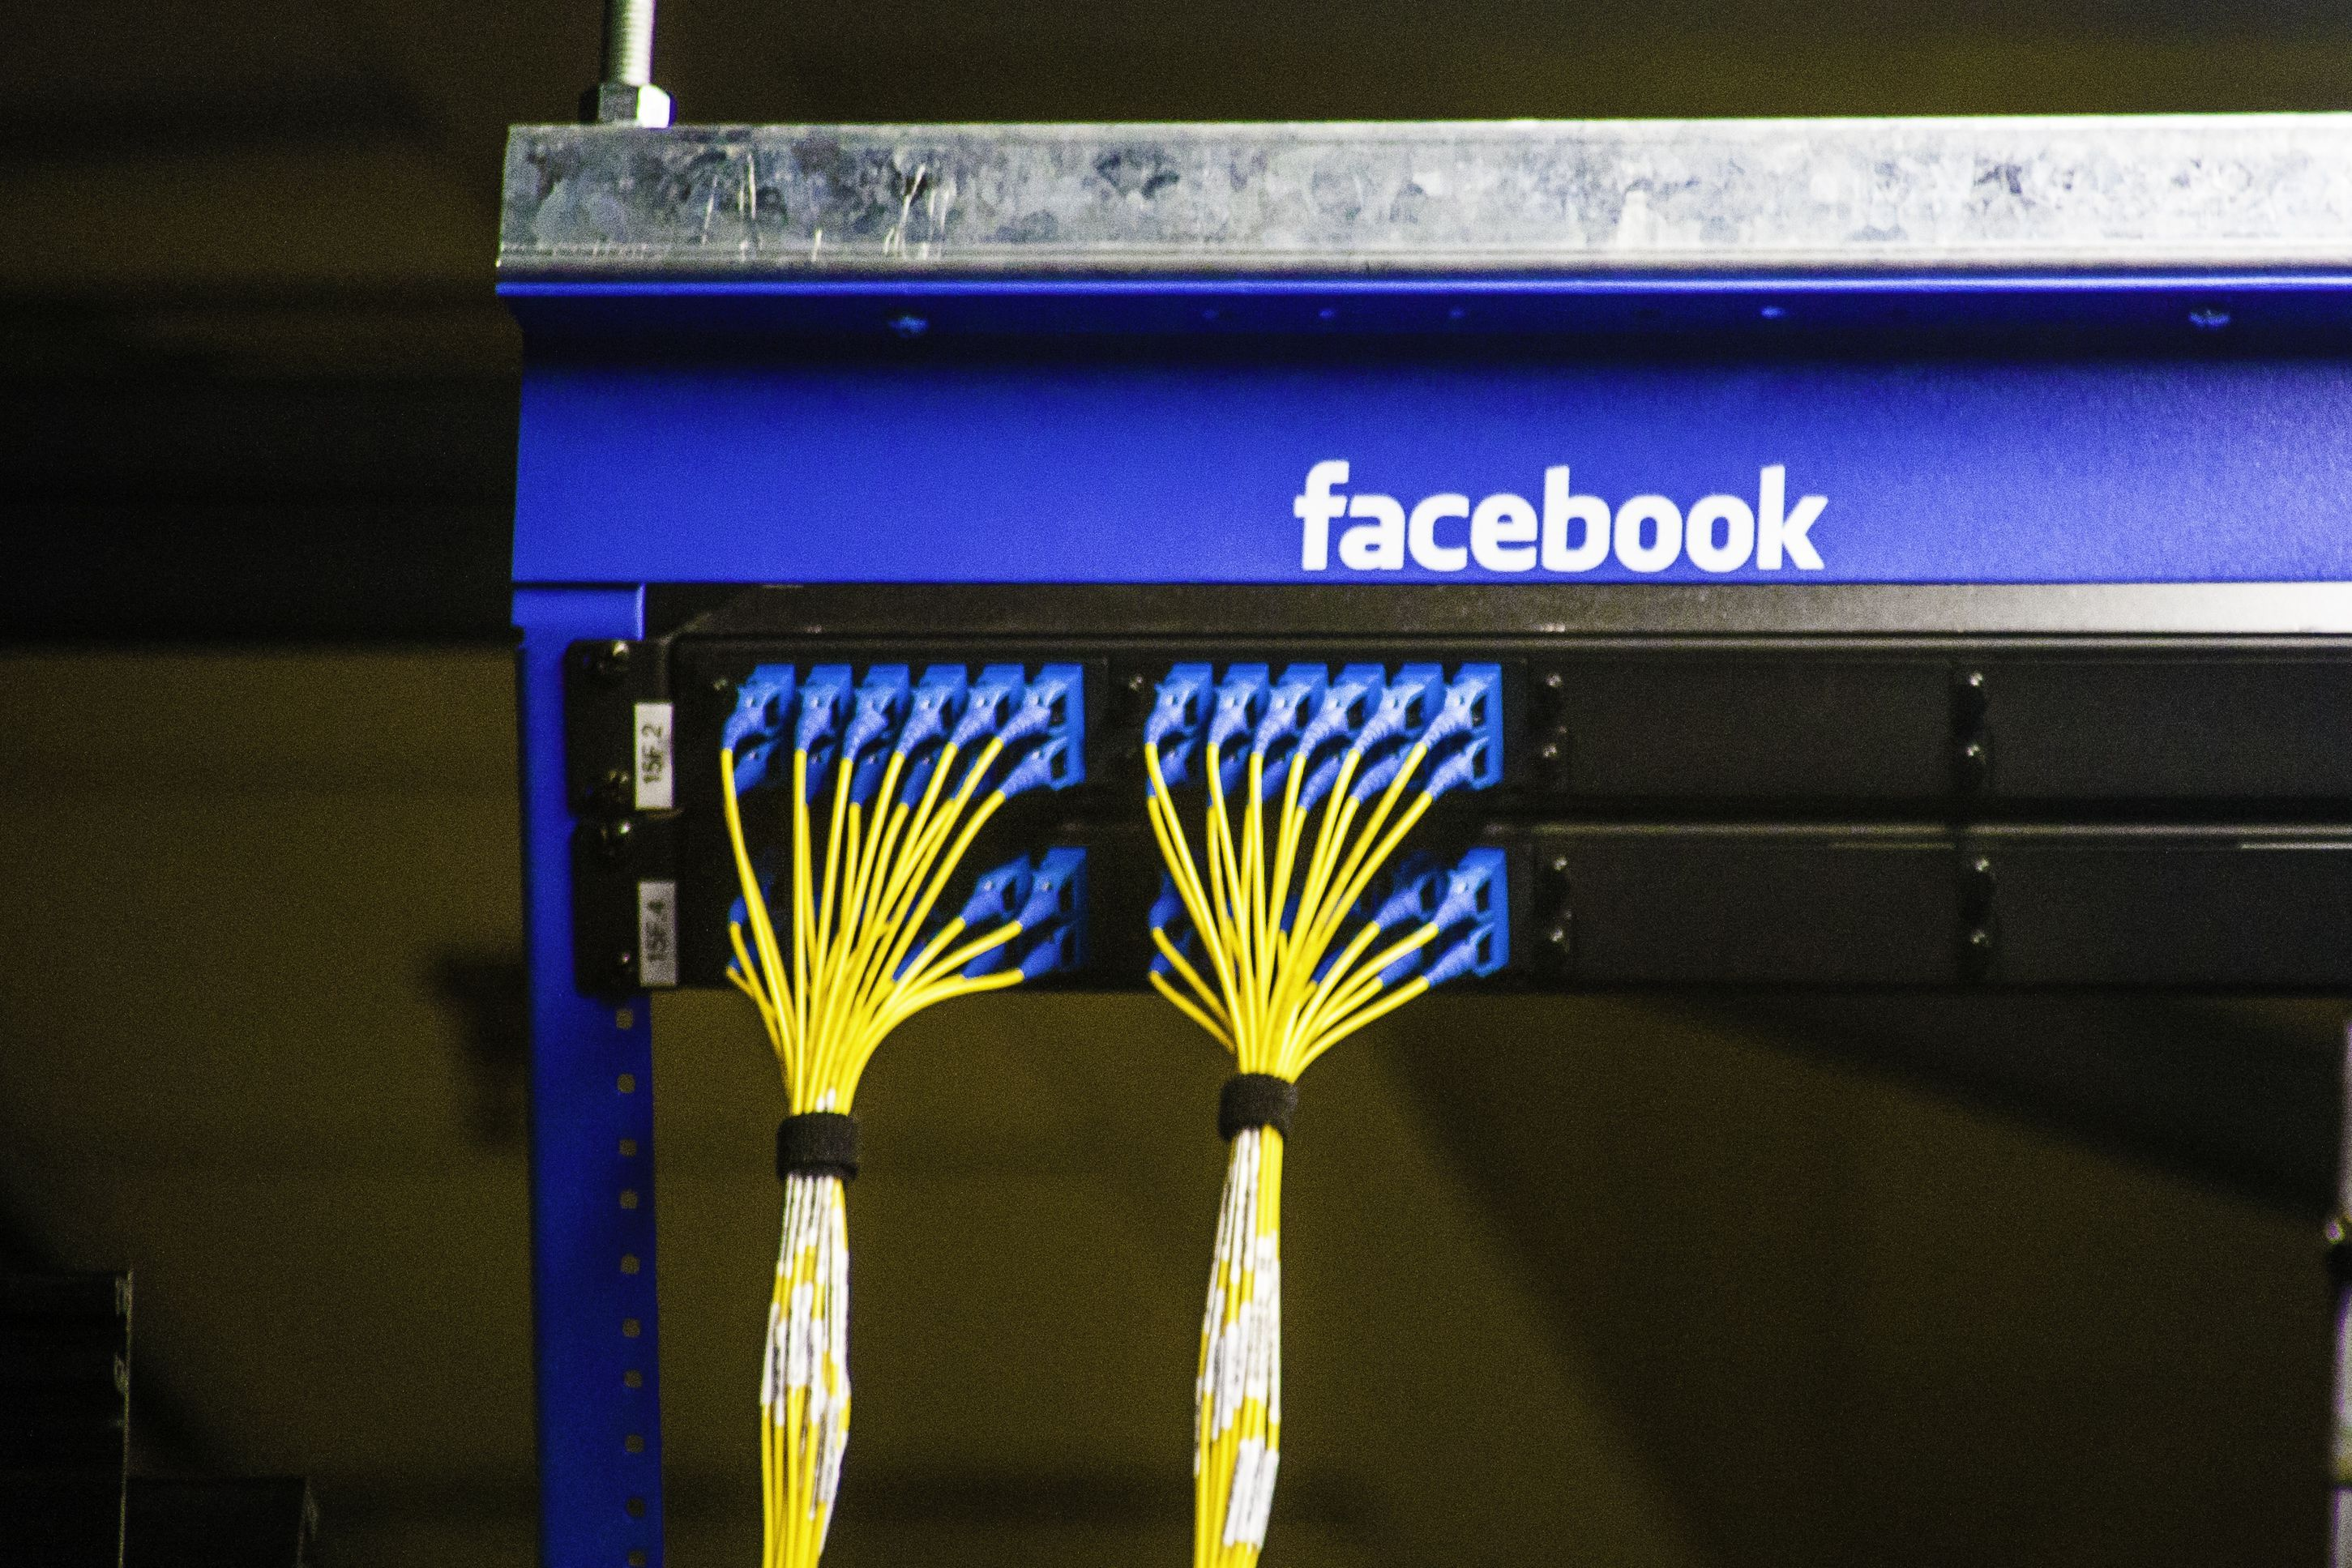 facebook-pineville-datacenter-8213